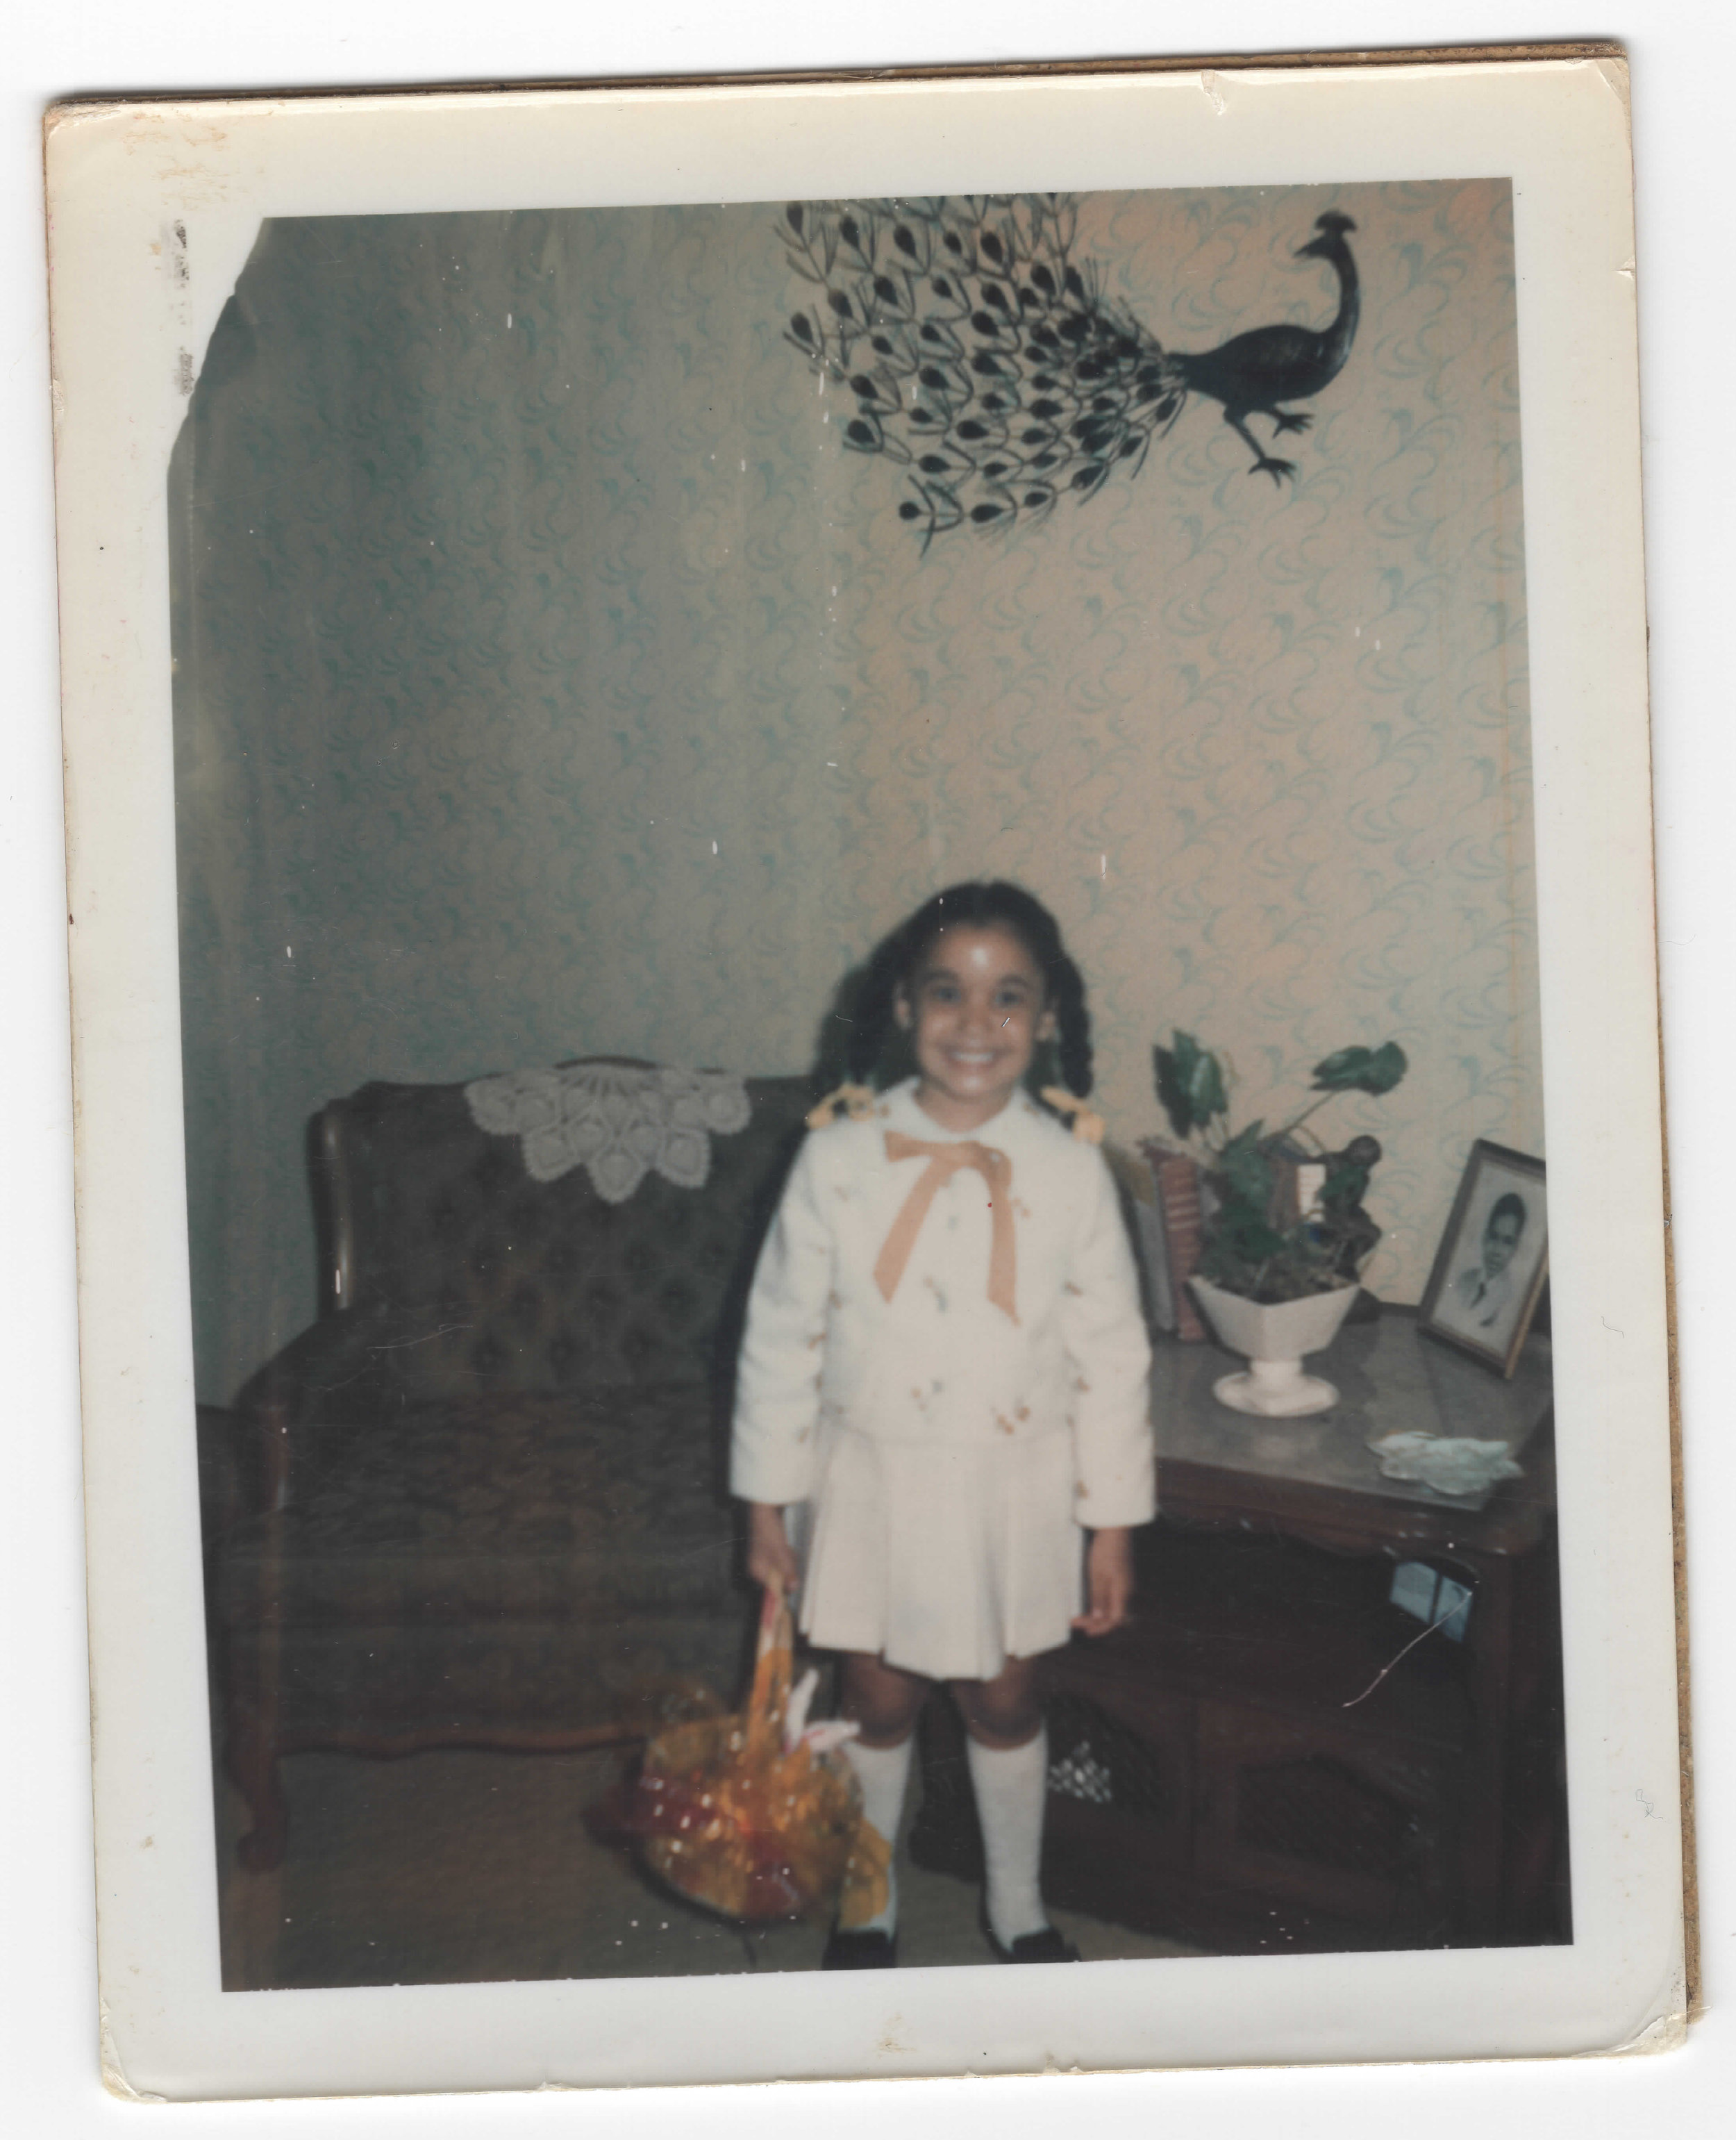 Generation 1:  From Whence I Came III    Childhood photograph of my mother, Veronica Stephanie (circa early 1970s)  7 x 5 in